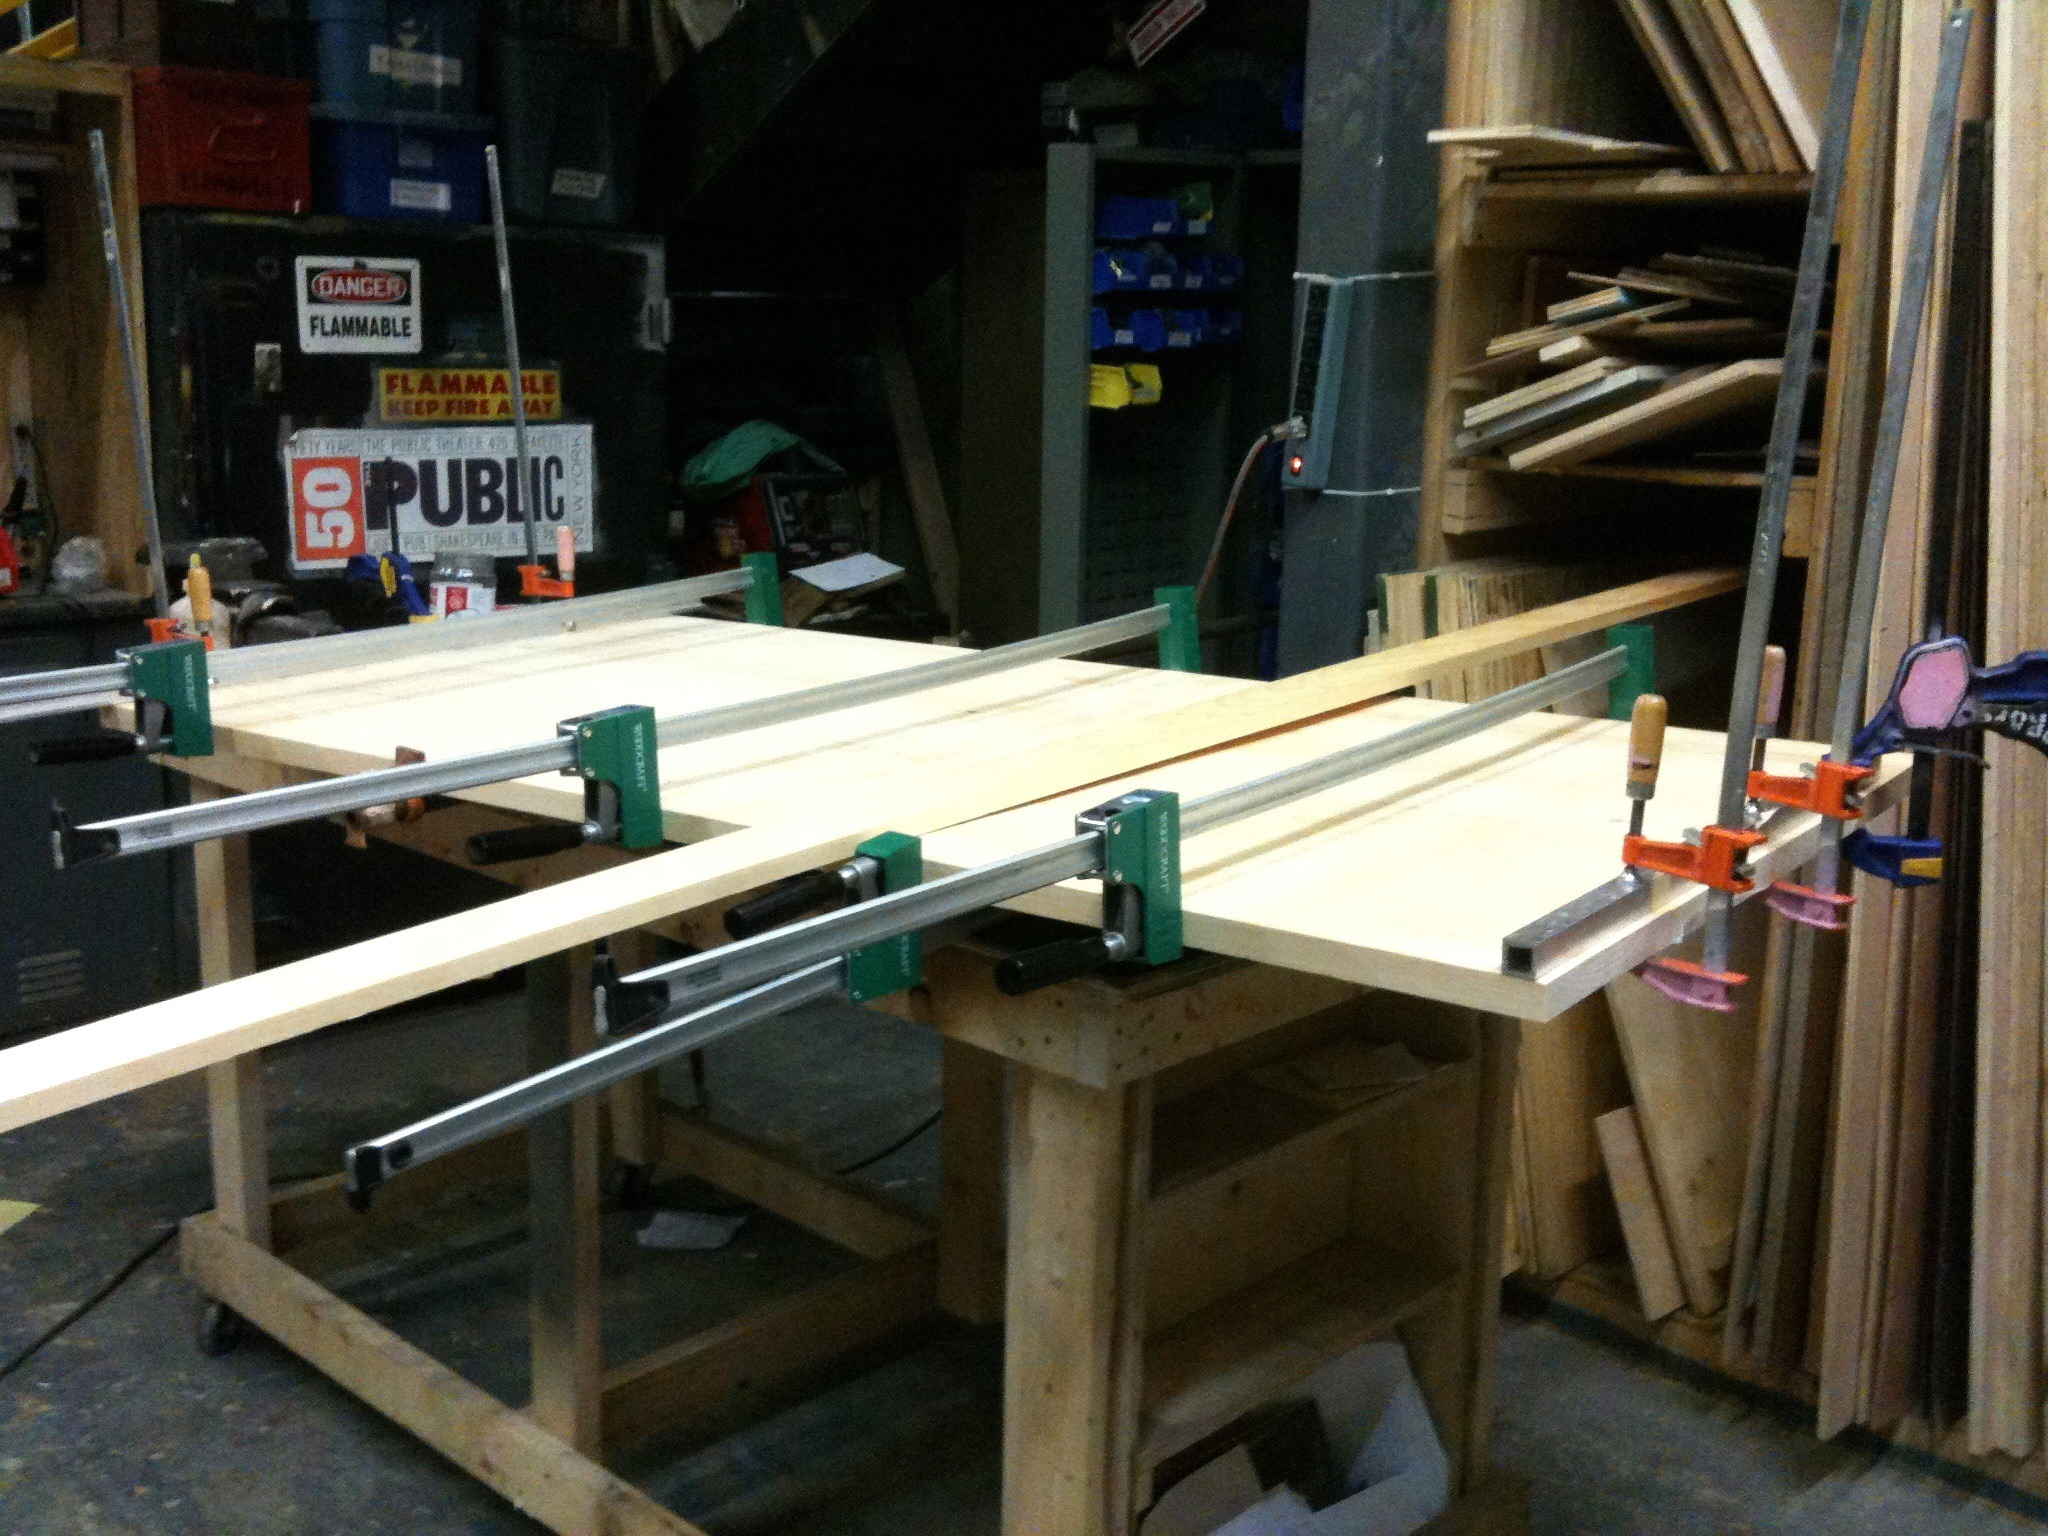 The boards for the table top are clamped together